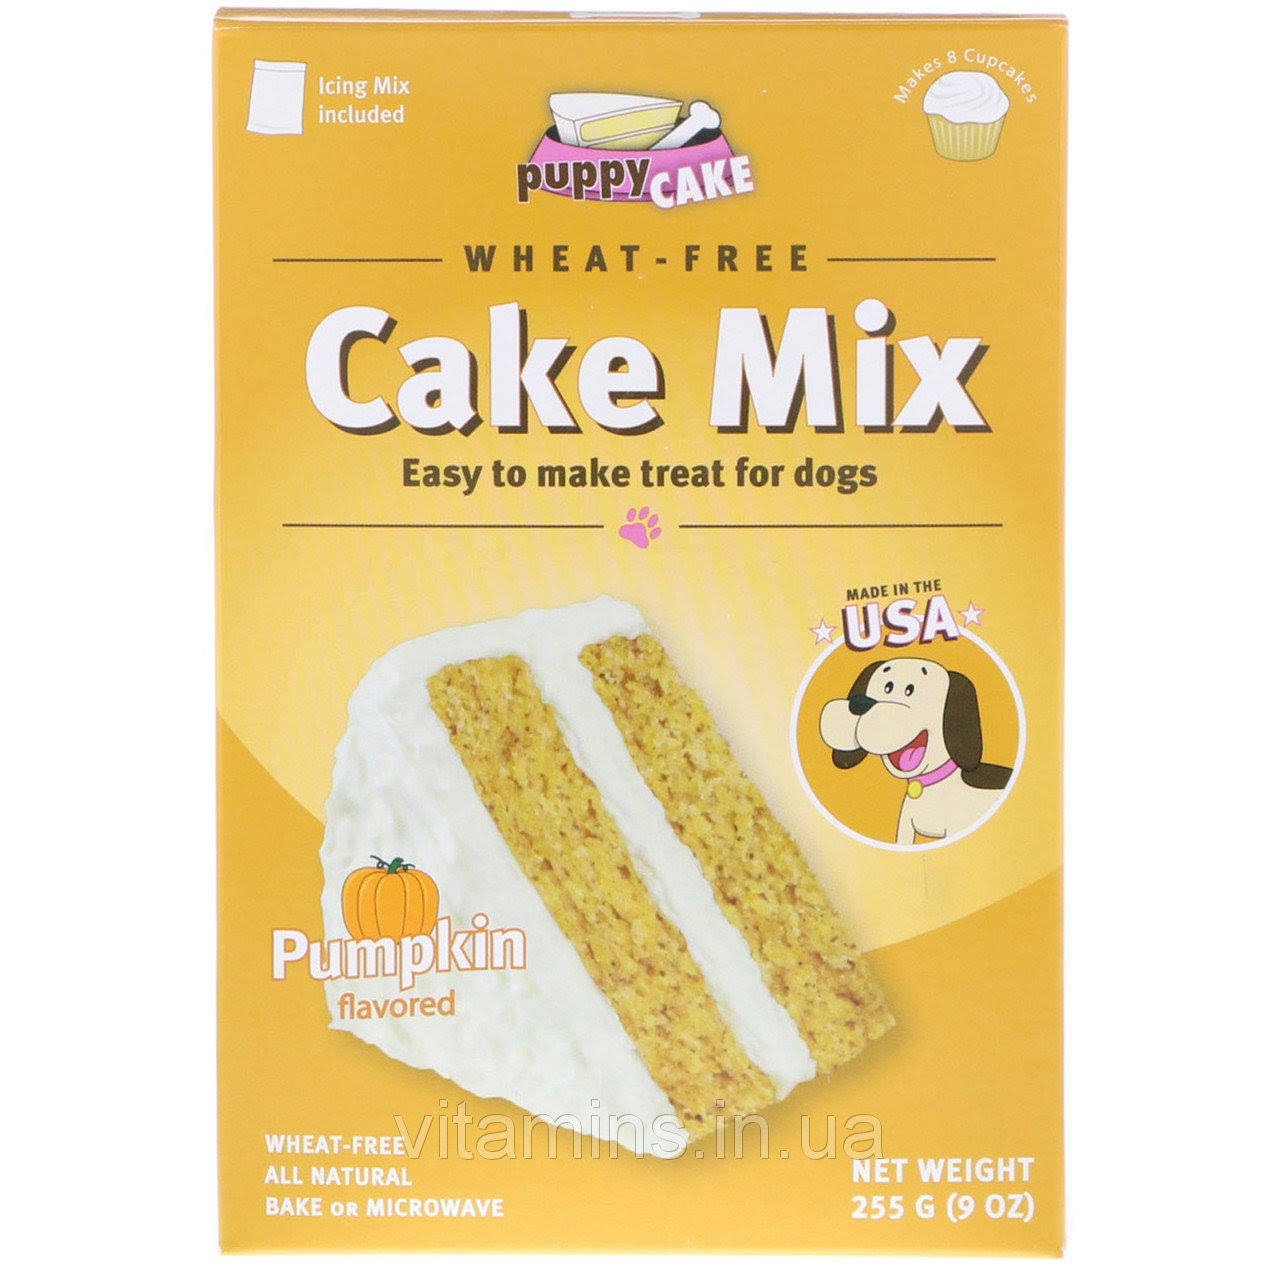 Puppy Cake Wheat-Free Cake Mix for Dogs - Pumpkin, 255g